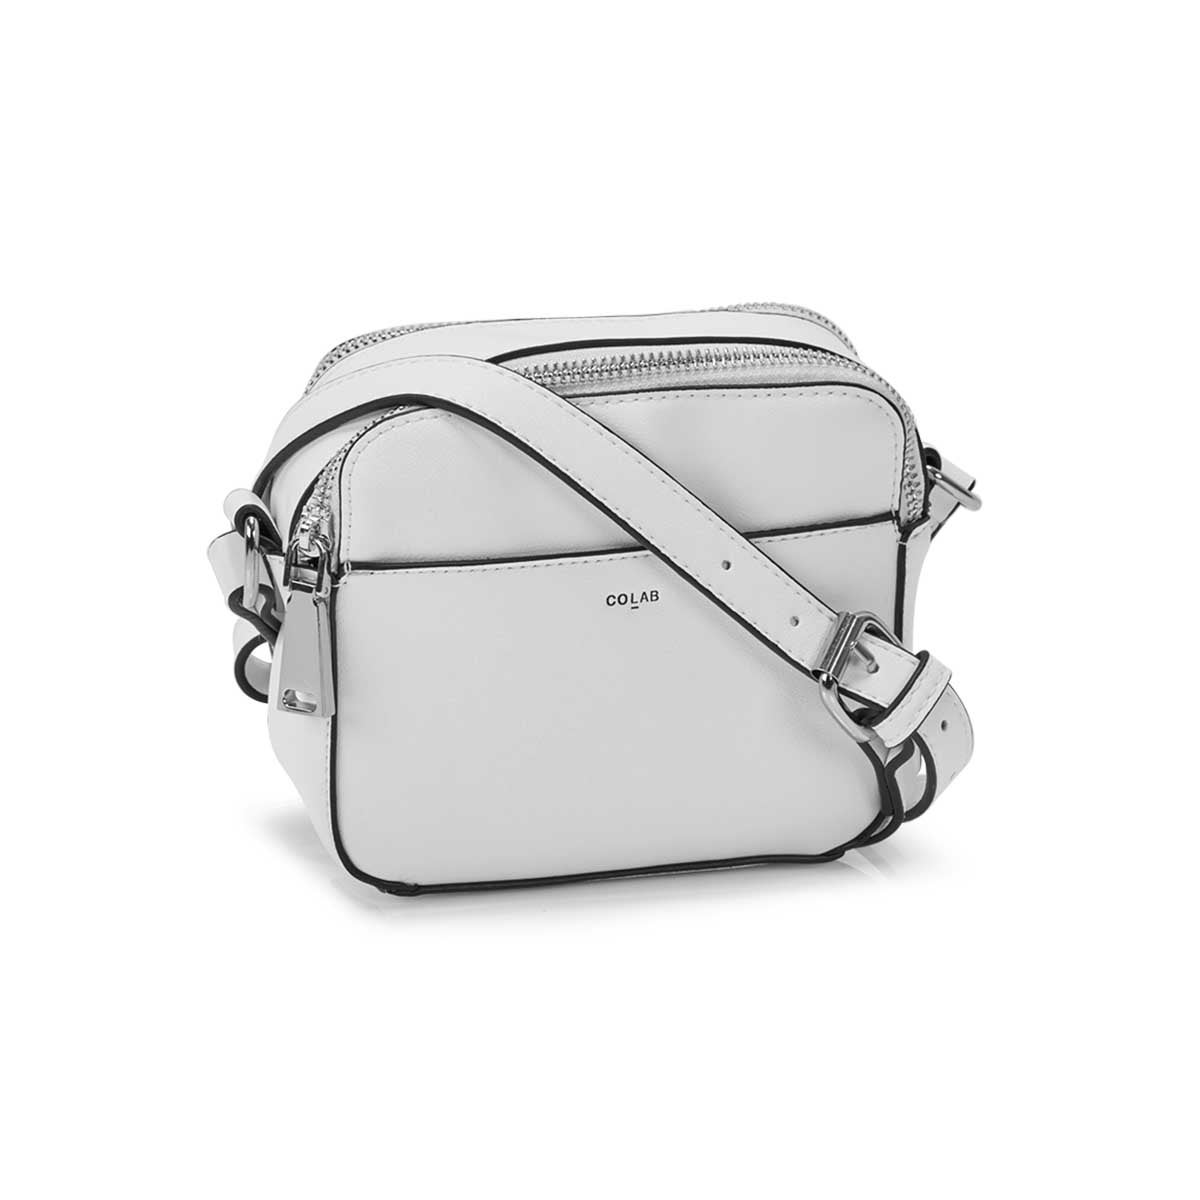 Women's MALIBU CAMERA white crossbody bag